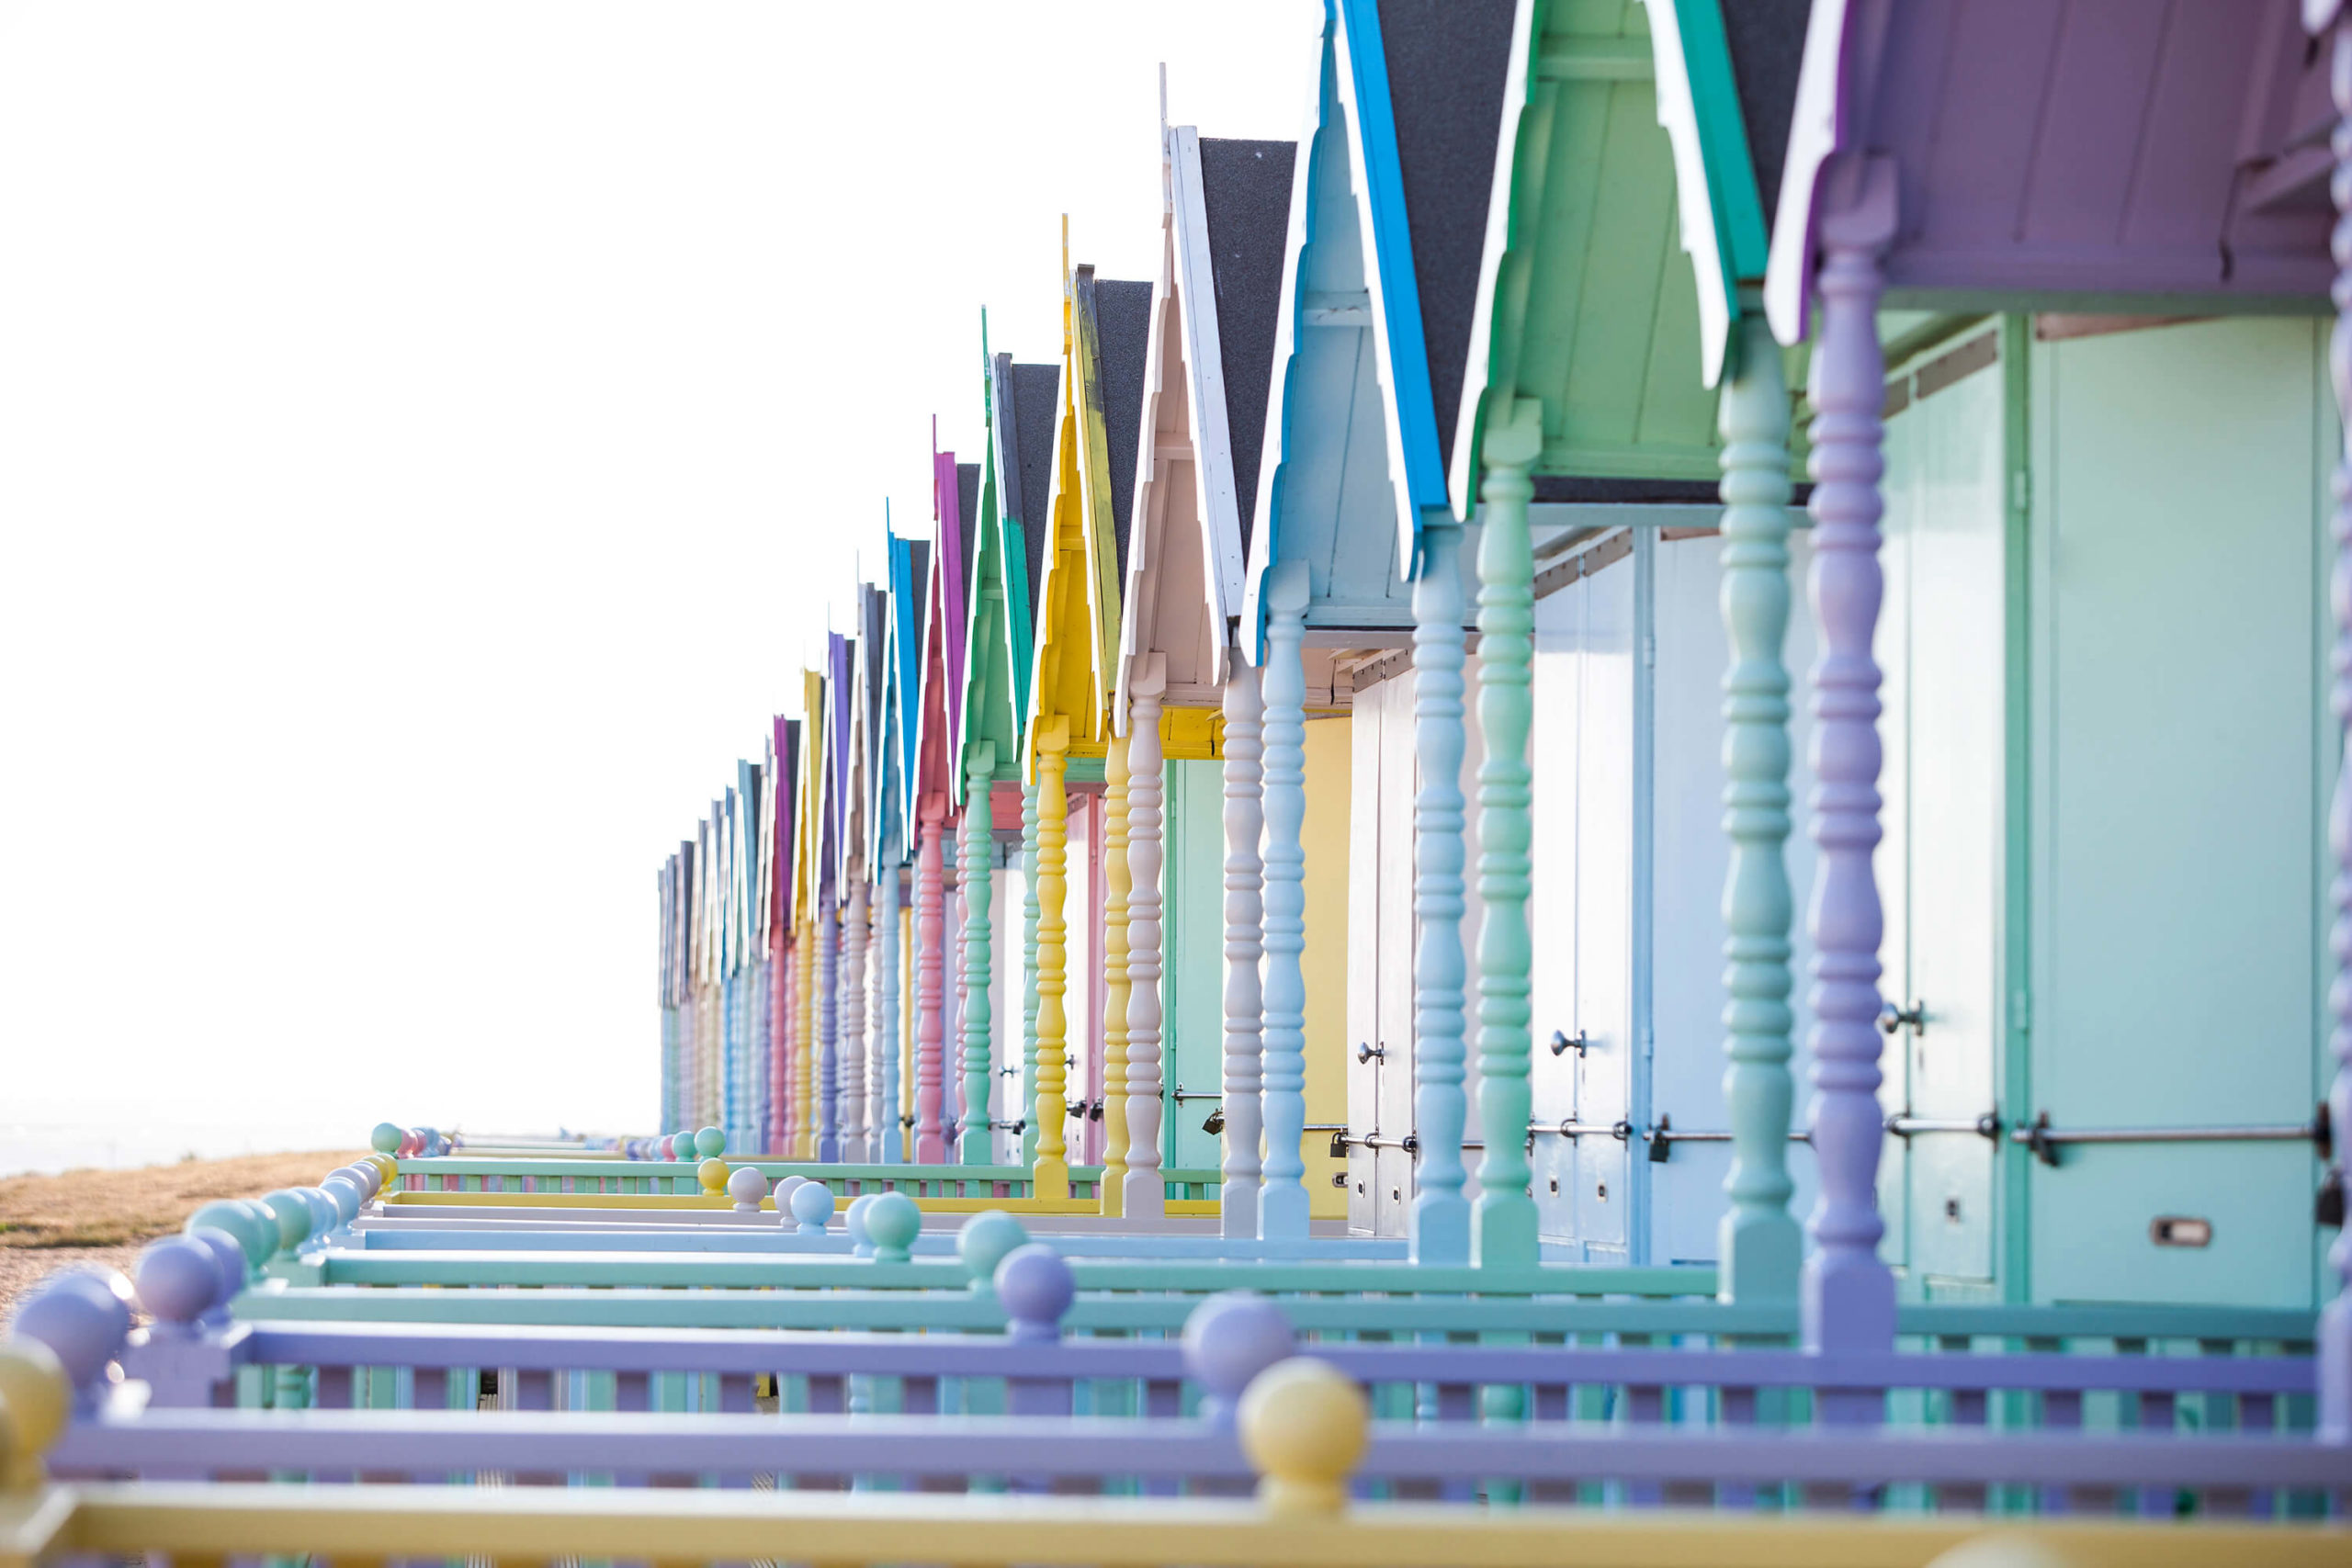 Mersea Island beachhuts for Think BDW agency